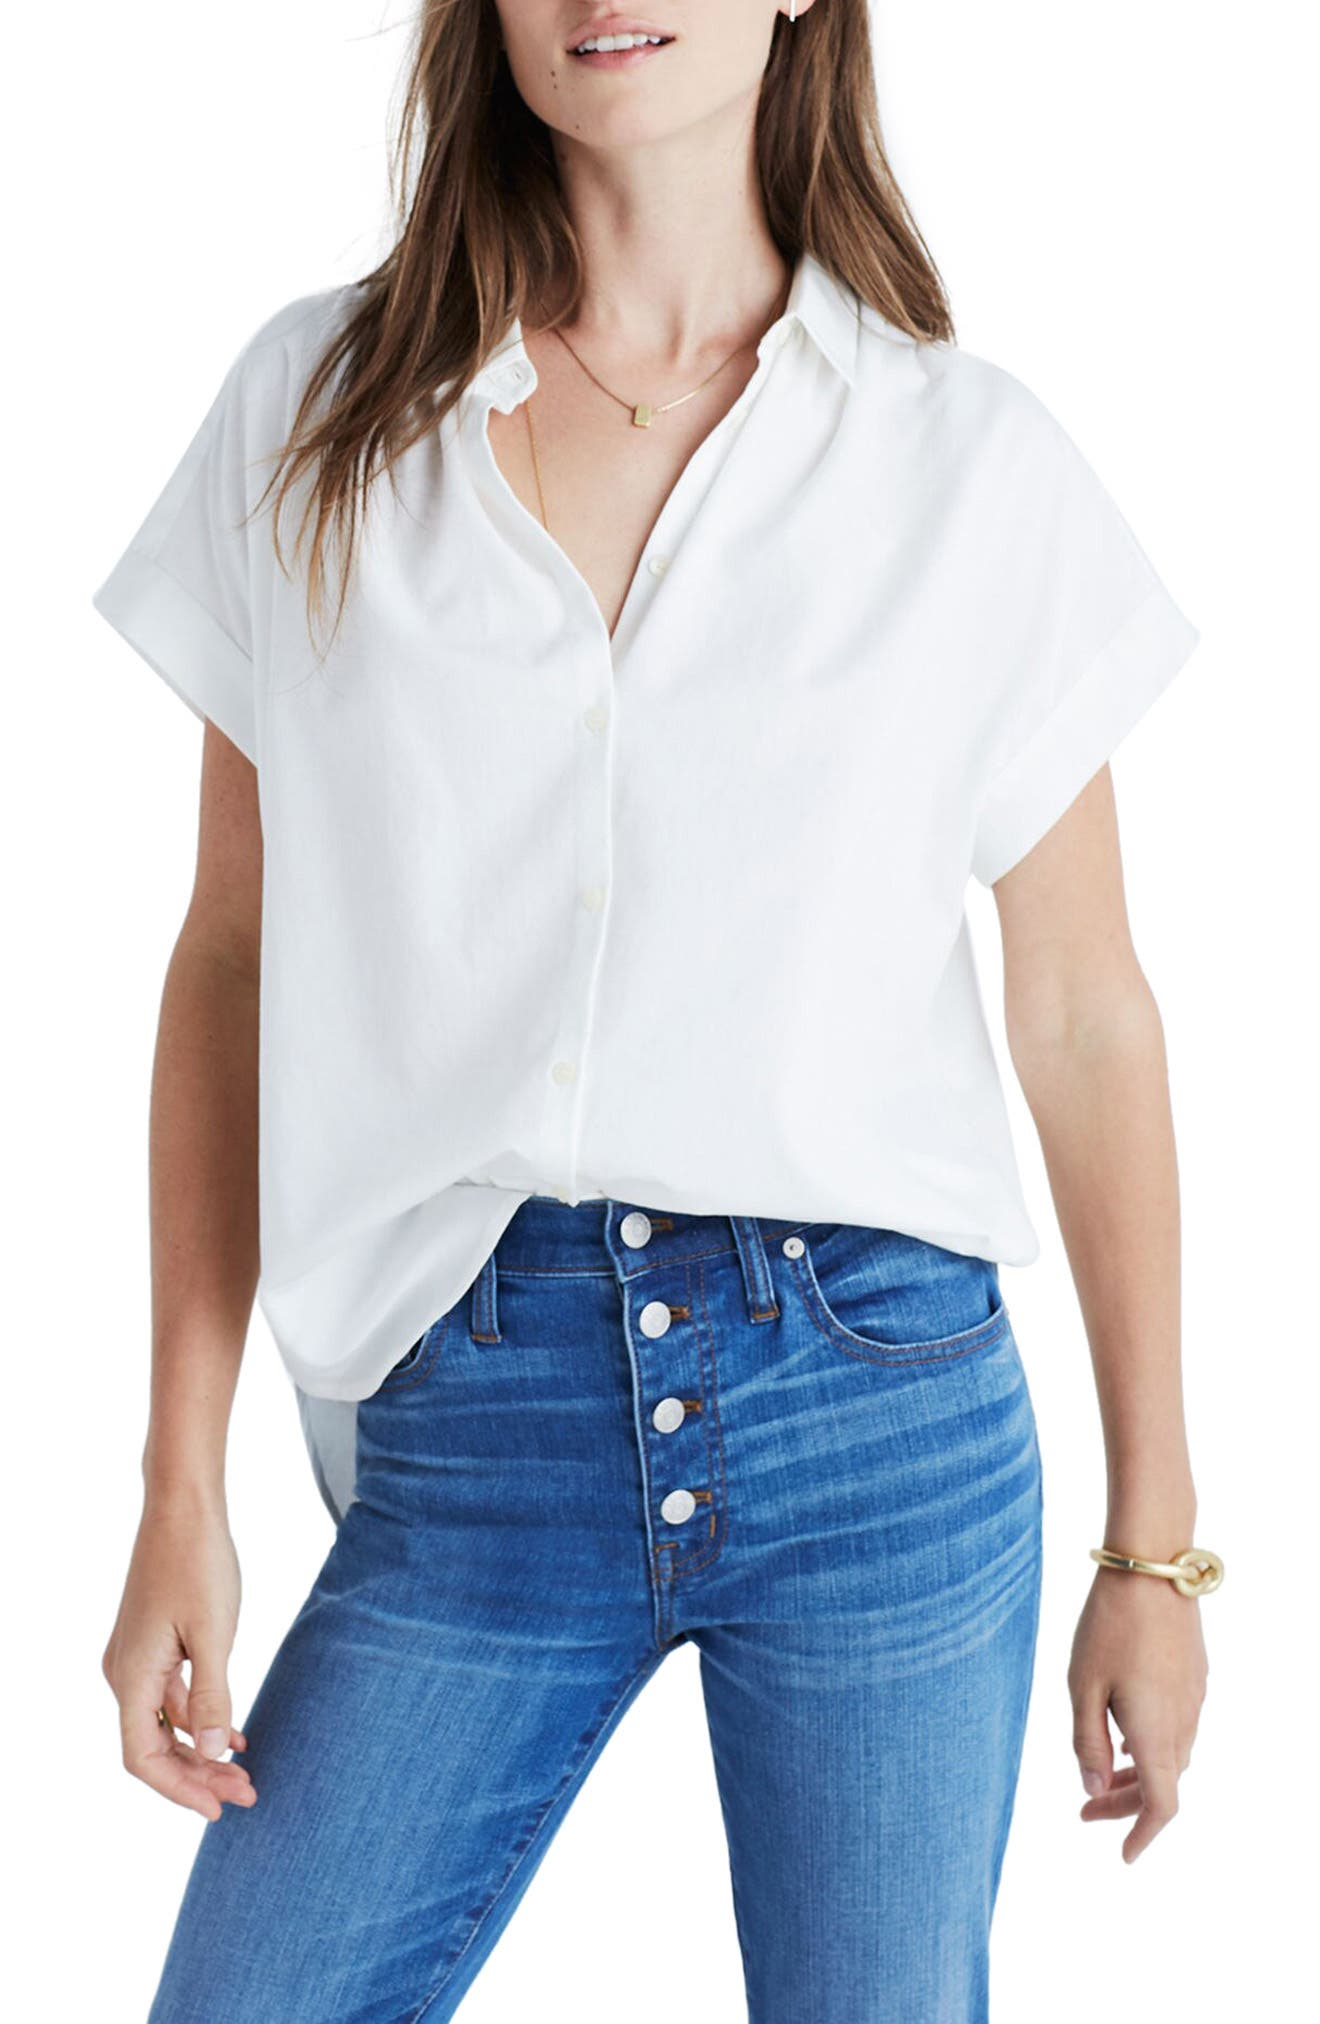 Perfectly slouchy and tailored, this crisp closet-staple blouse has cuffed short sleeves and a cool curved hem. Style Name: Madewell Central Blouse. Style Number: 5290371. Available in stores.